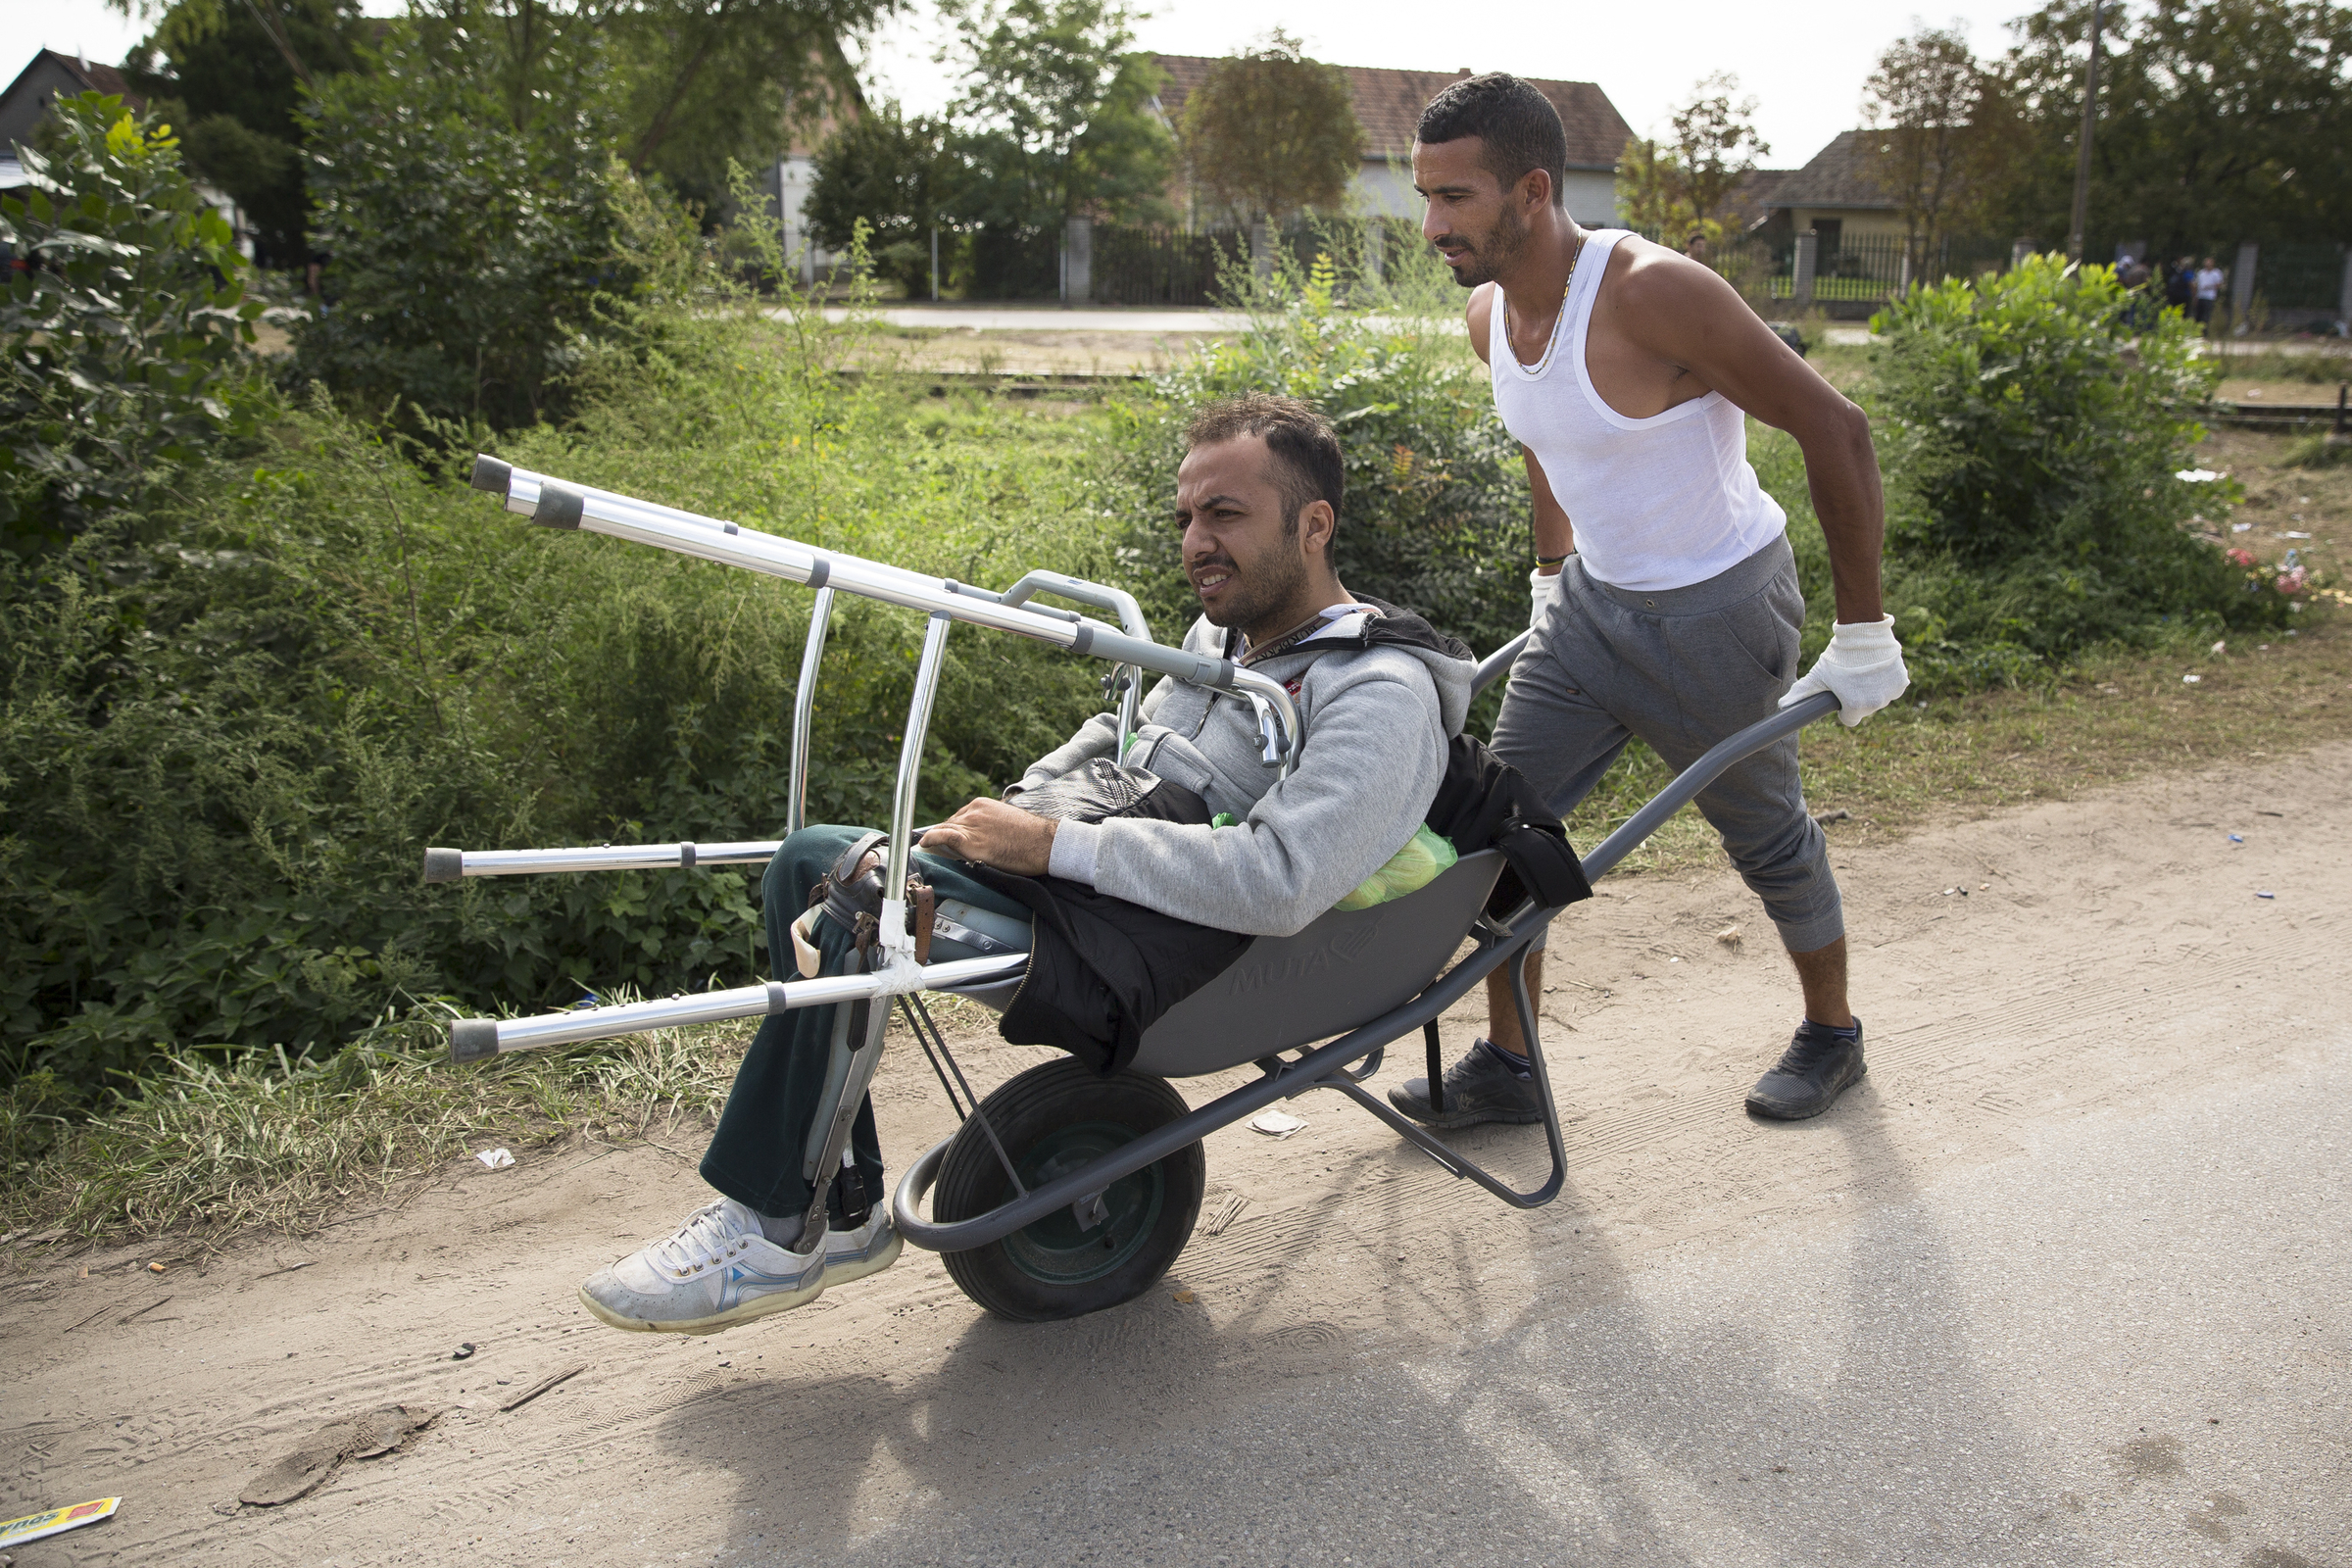 Massur Nasser pushes his friend, Gazi El Fadour, in a wheelbarrow with a flat tire in Horgos, Serbia. El Fadour lost both his legs when ISIS attacked his university in Aleppo. The two men have been traveling companions since meeting months earlier in Turkey.